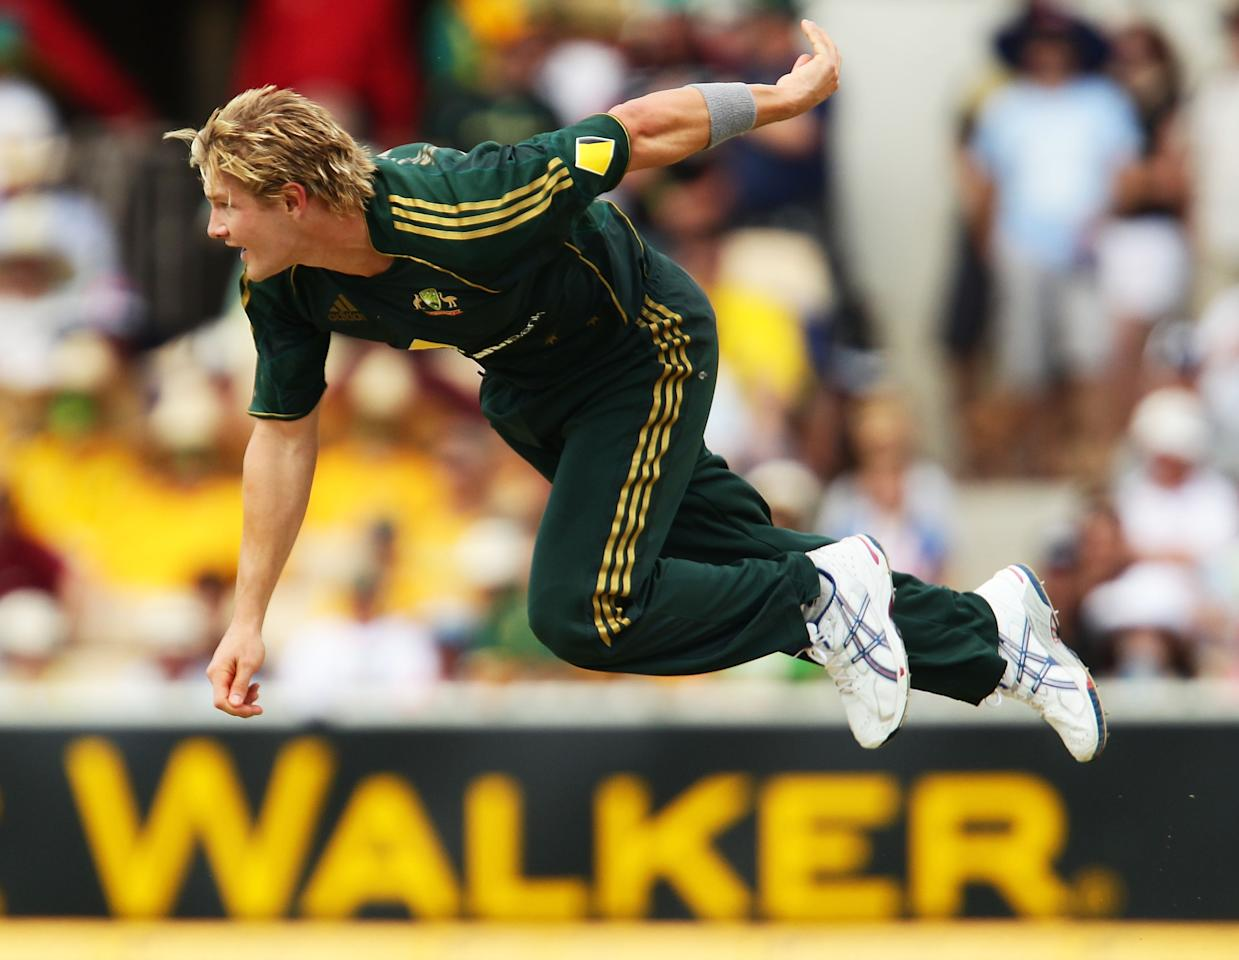 ADELAIDE, AUSTRALIA - FEBRUARY 09:  Shane Watson of Australia bowls during the second One Day International between Australia and the West Indies at Adelaide Oval on February 9, 2010 in Adelaide, Australia.  (Photo by Matt King/Getty Images)